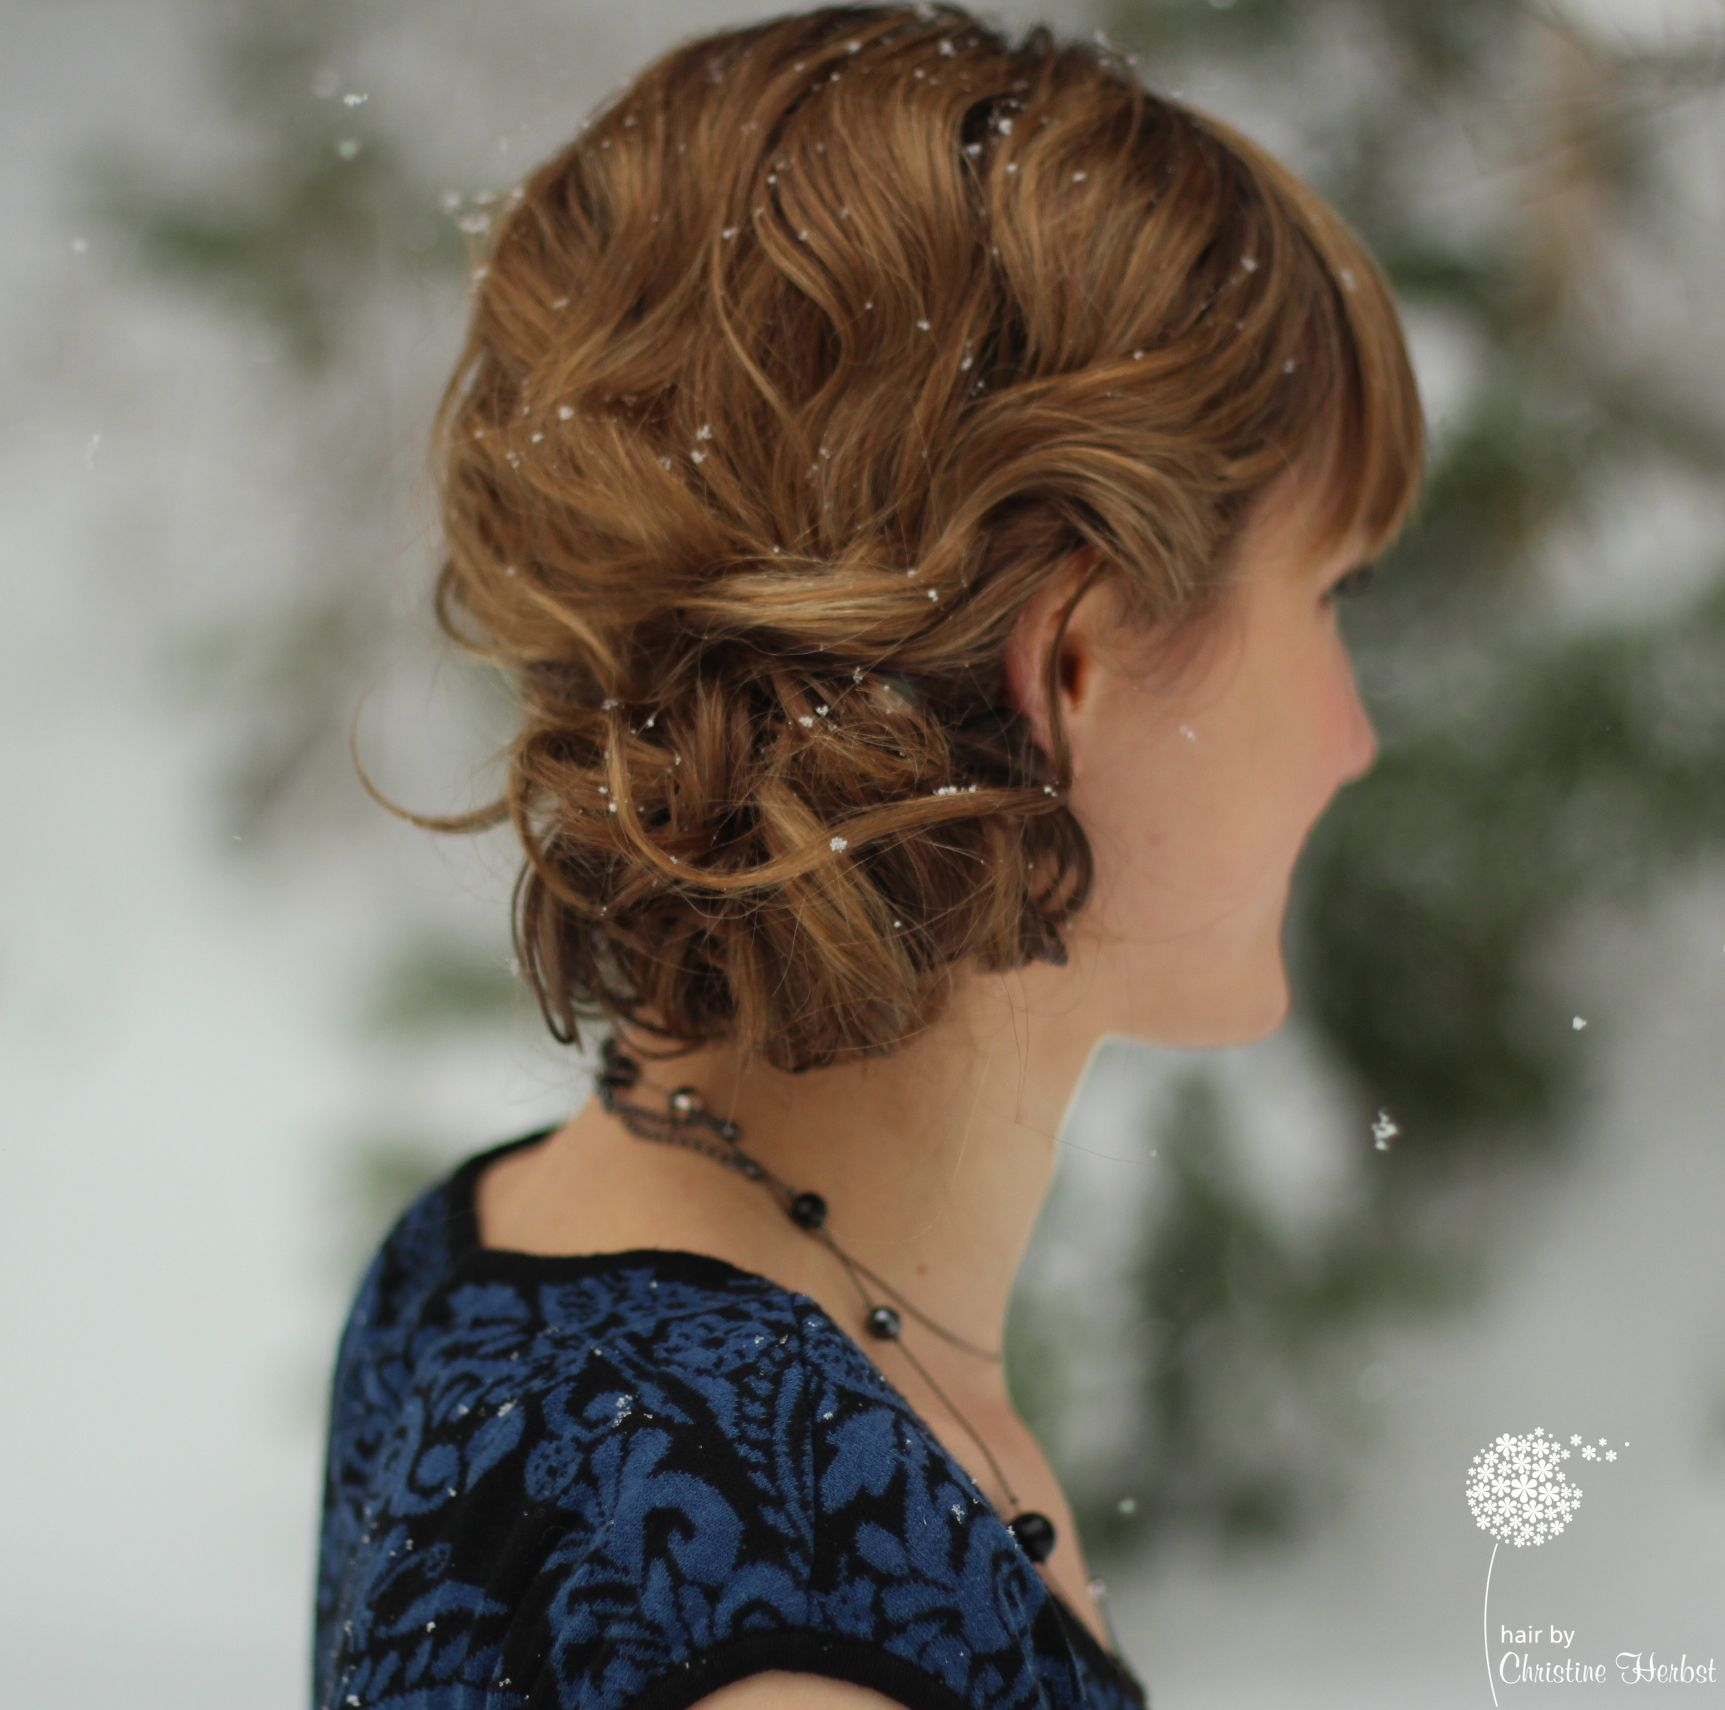 Romantic low side bun. Perfect for the bride! ‪#‎bostonwedding‬#romanticsidebun #lowsidebuns Romantic low side bun. Perfect for the bride! ‪#‎bostonwedding‬#romanticsidebun #lowsidebuns Romantic low side bun. Perfect for the bride! ‪#‎bostonwedding‬#romanticsidebun #lowsidebuns Romantic low side bun. Perfect for the bride! ‪#‎bostonwedding‬#romanticsidebun #lowsidebuns Romantic low side bun. Perfect for the bride! ‪#‎bostonwedding‬#romanticsidebun #lowsidebuns Roman #lowsidebuns